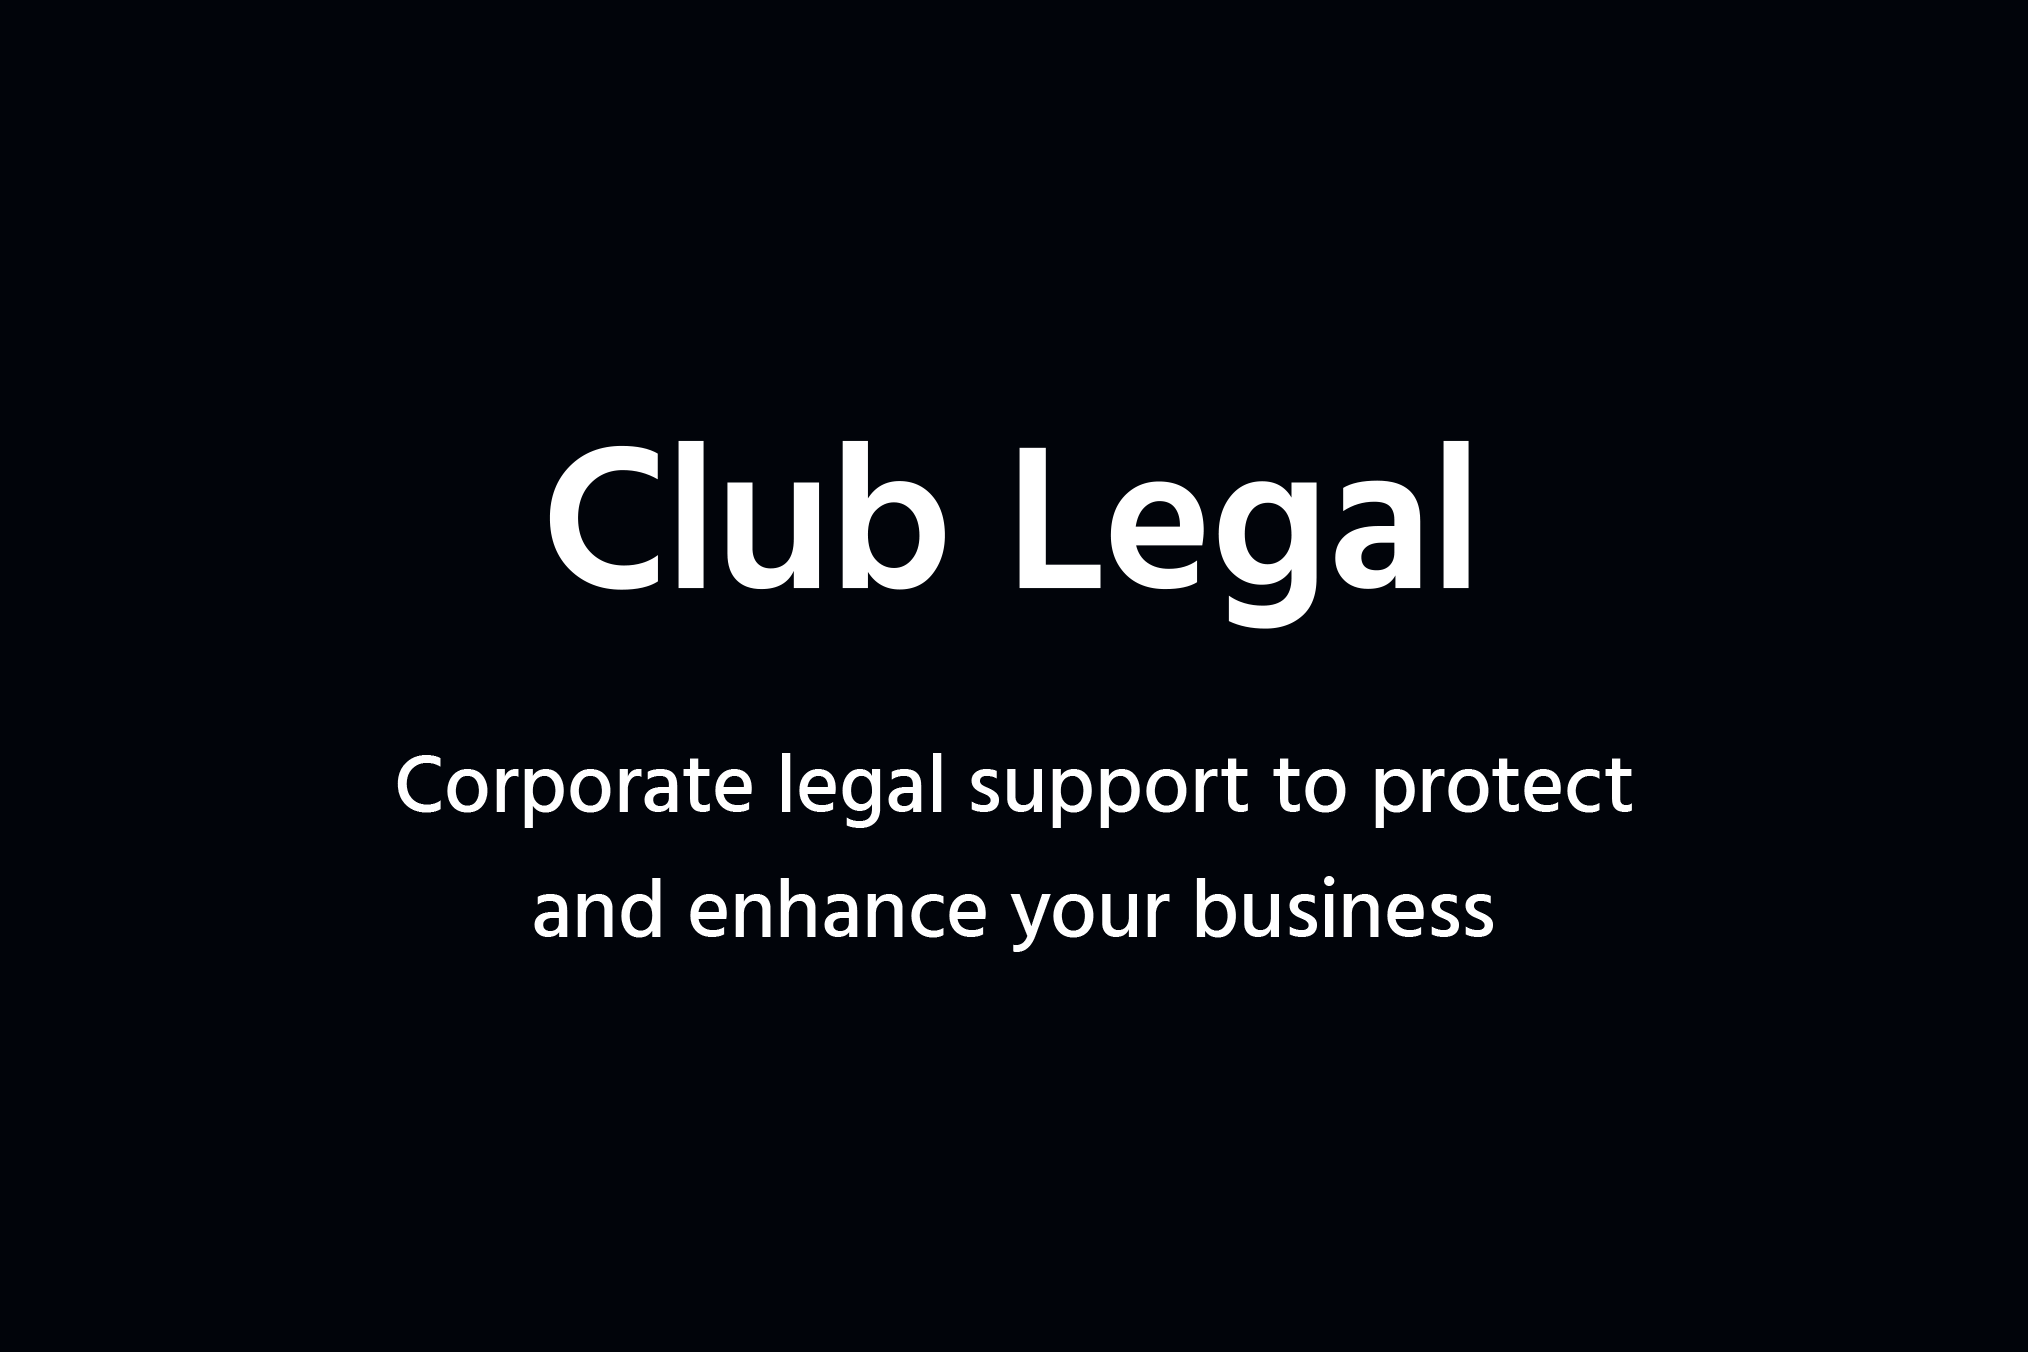 Club Legal –Corporate legal support to protect and enhance your business